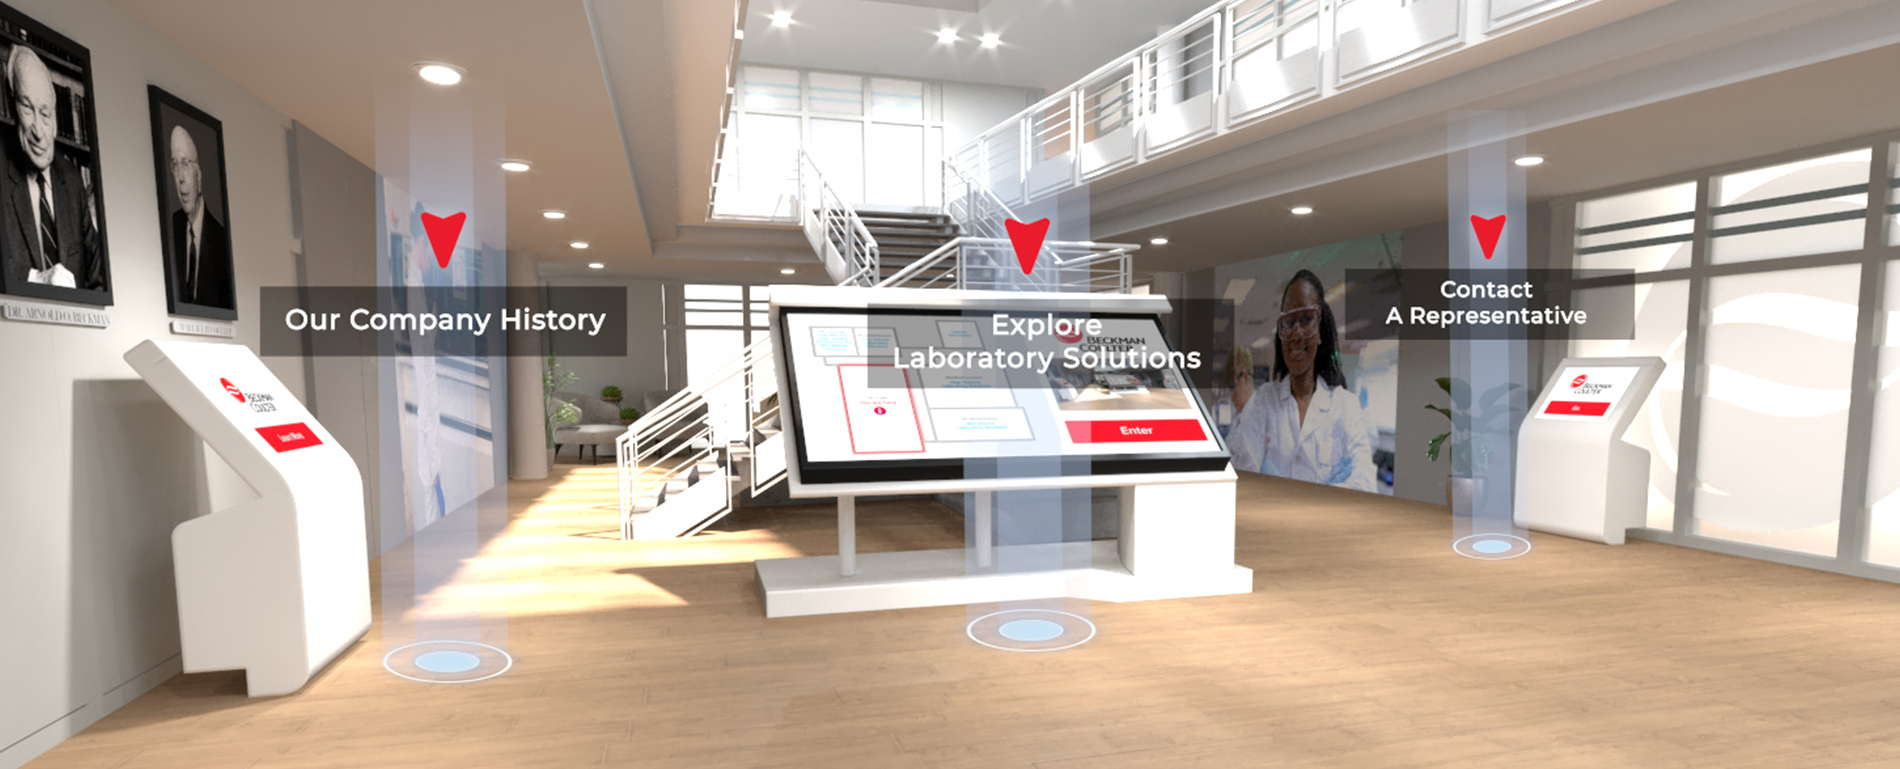 virtual showcase beckmancoulter.com